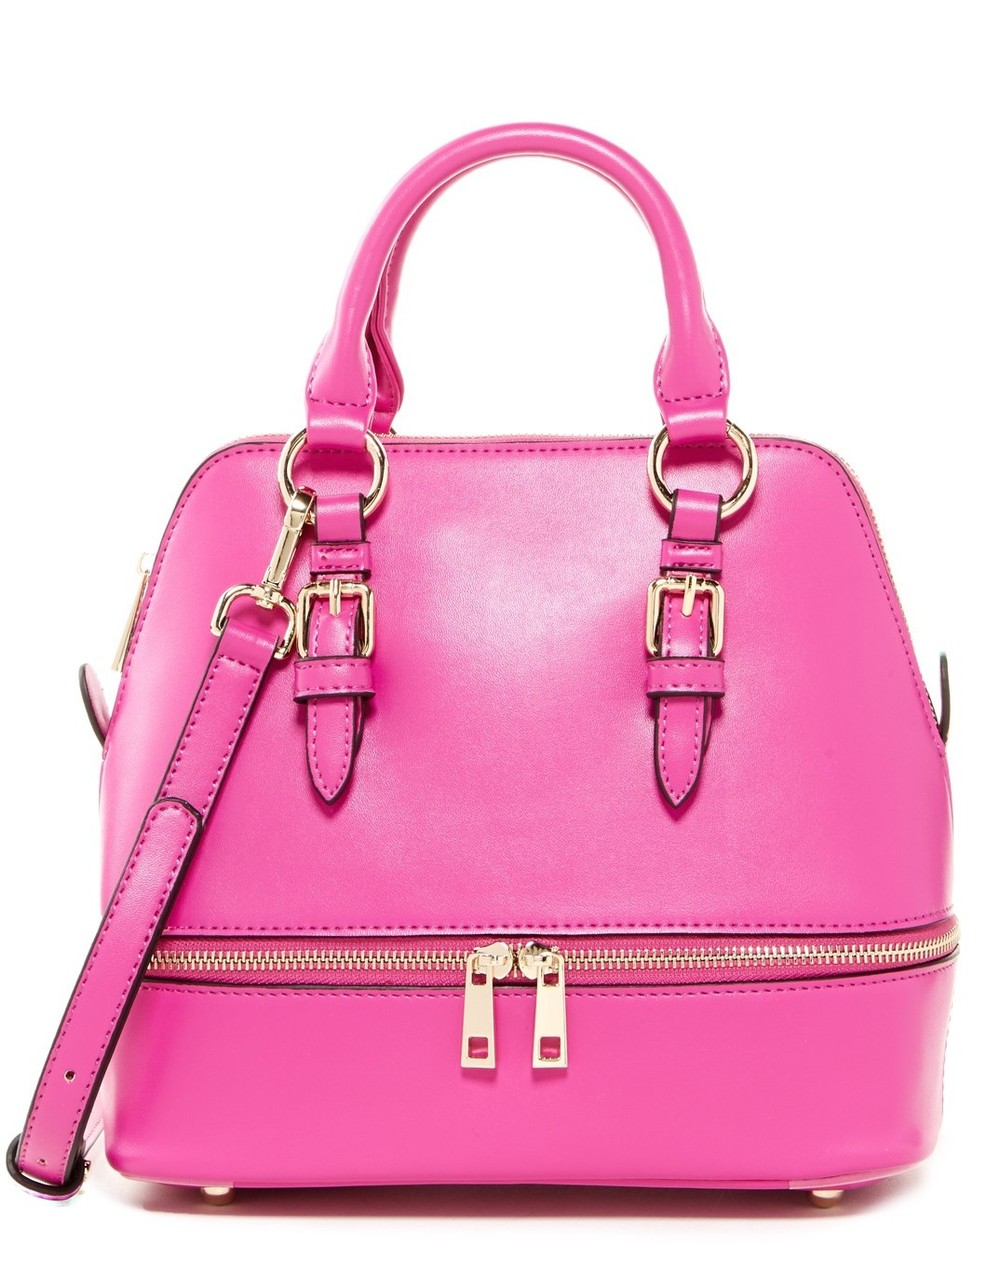 Sondra Roberts Small Bowler Satchel in Pink (also available in yellow and black), $50 at NordstromRack.com.